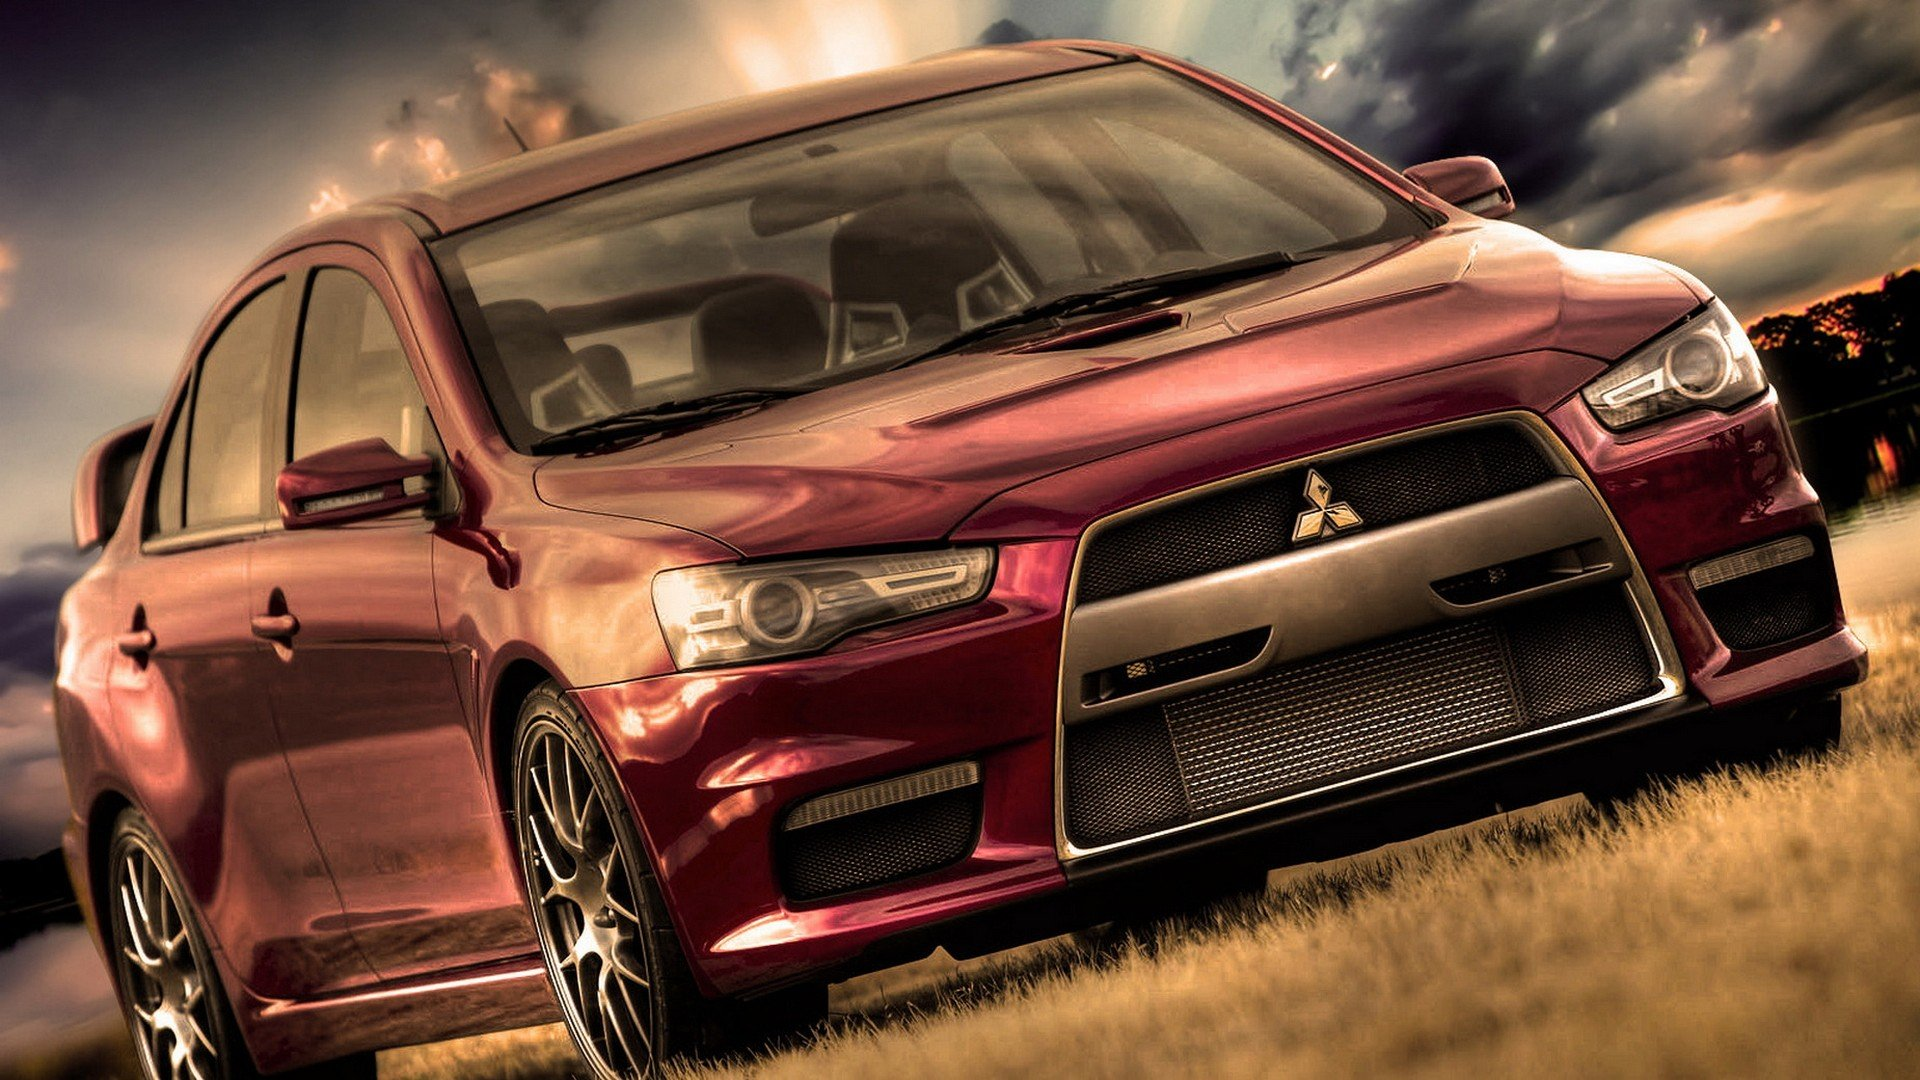 Fast And Furious Car Wallpaper Download Cars Vehicles Wheels Mitsubishi Lancer Evolution X Wrc